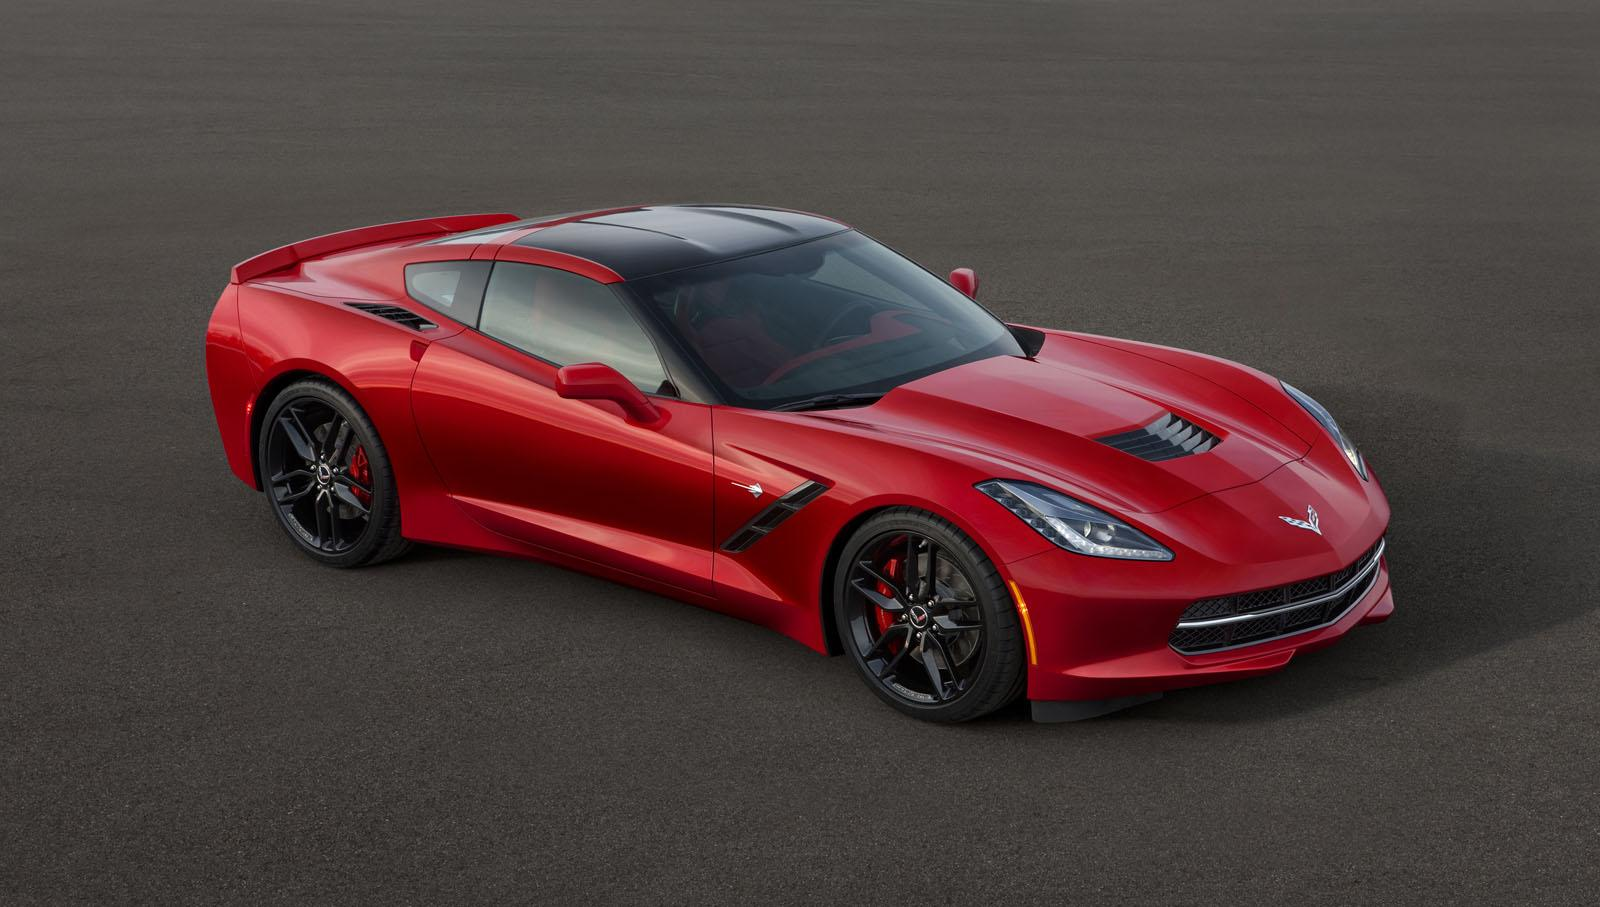 2014-Chevrolet-Corvette-Stingray-C7-1